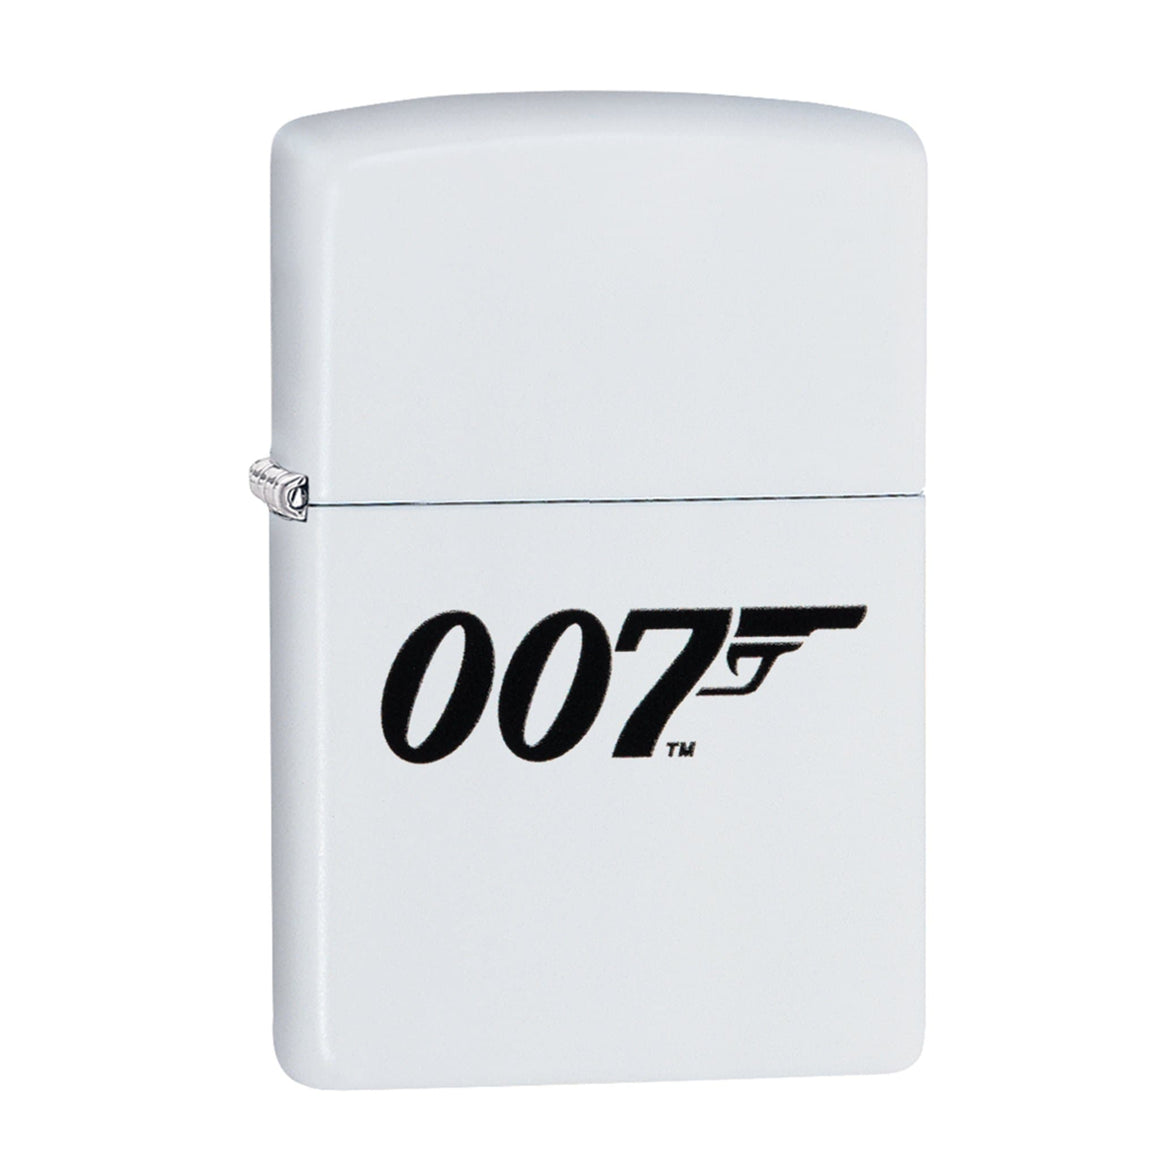 JAMES BOND ZIPPO LIGHTER (007 LOGO WHITE)